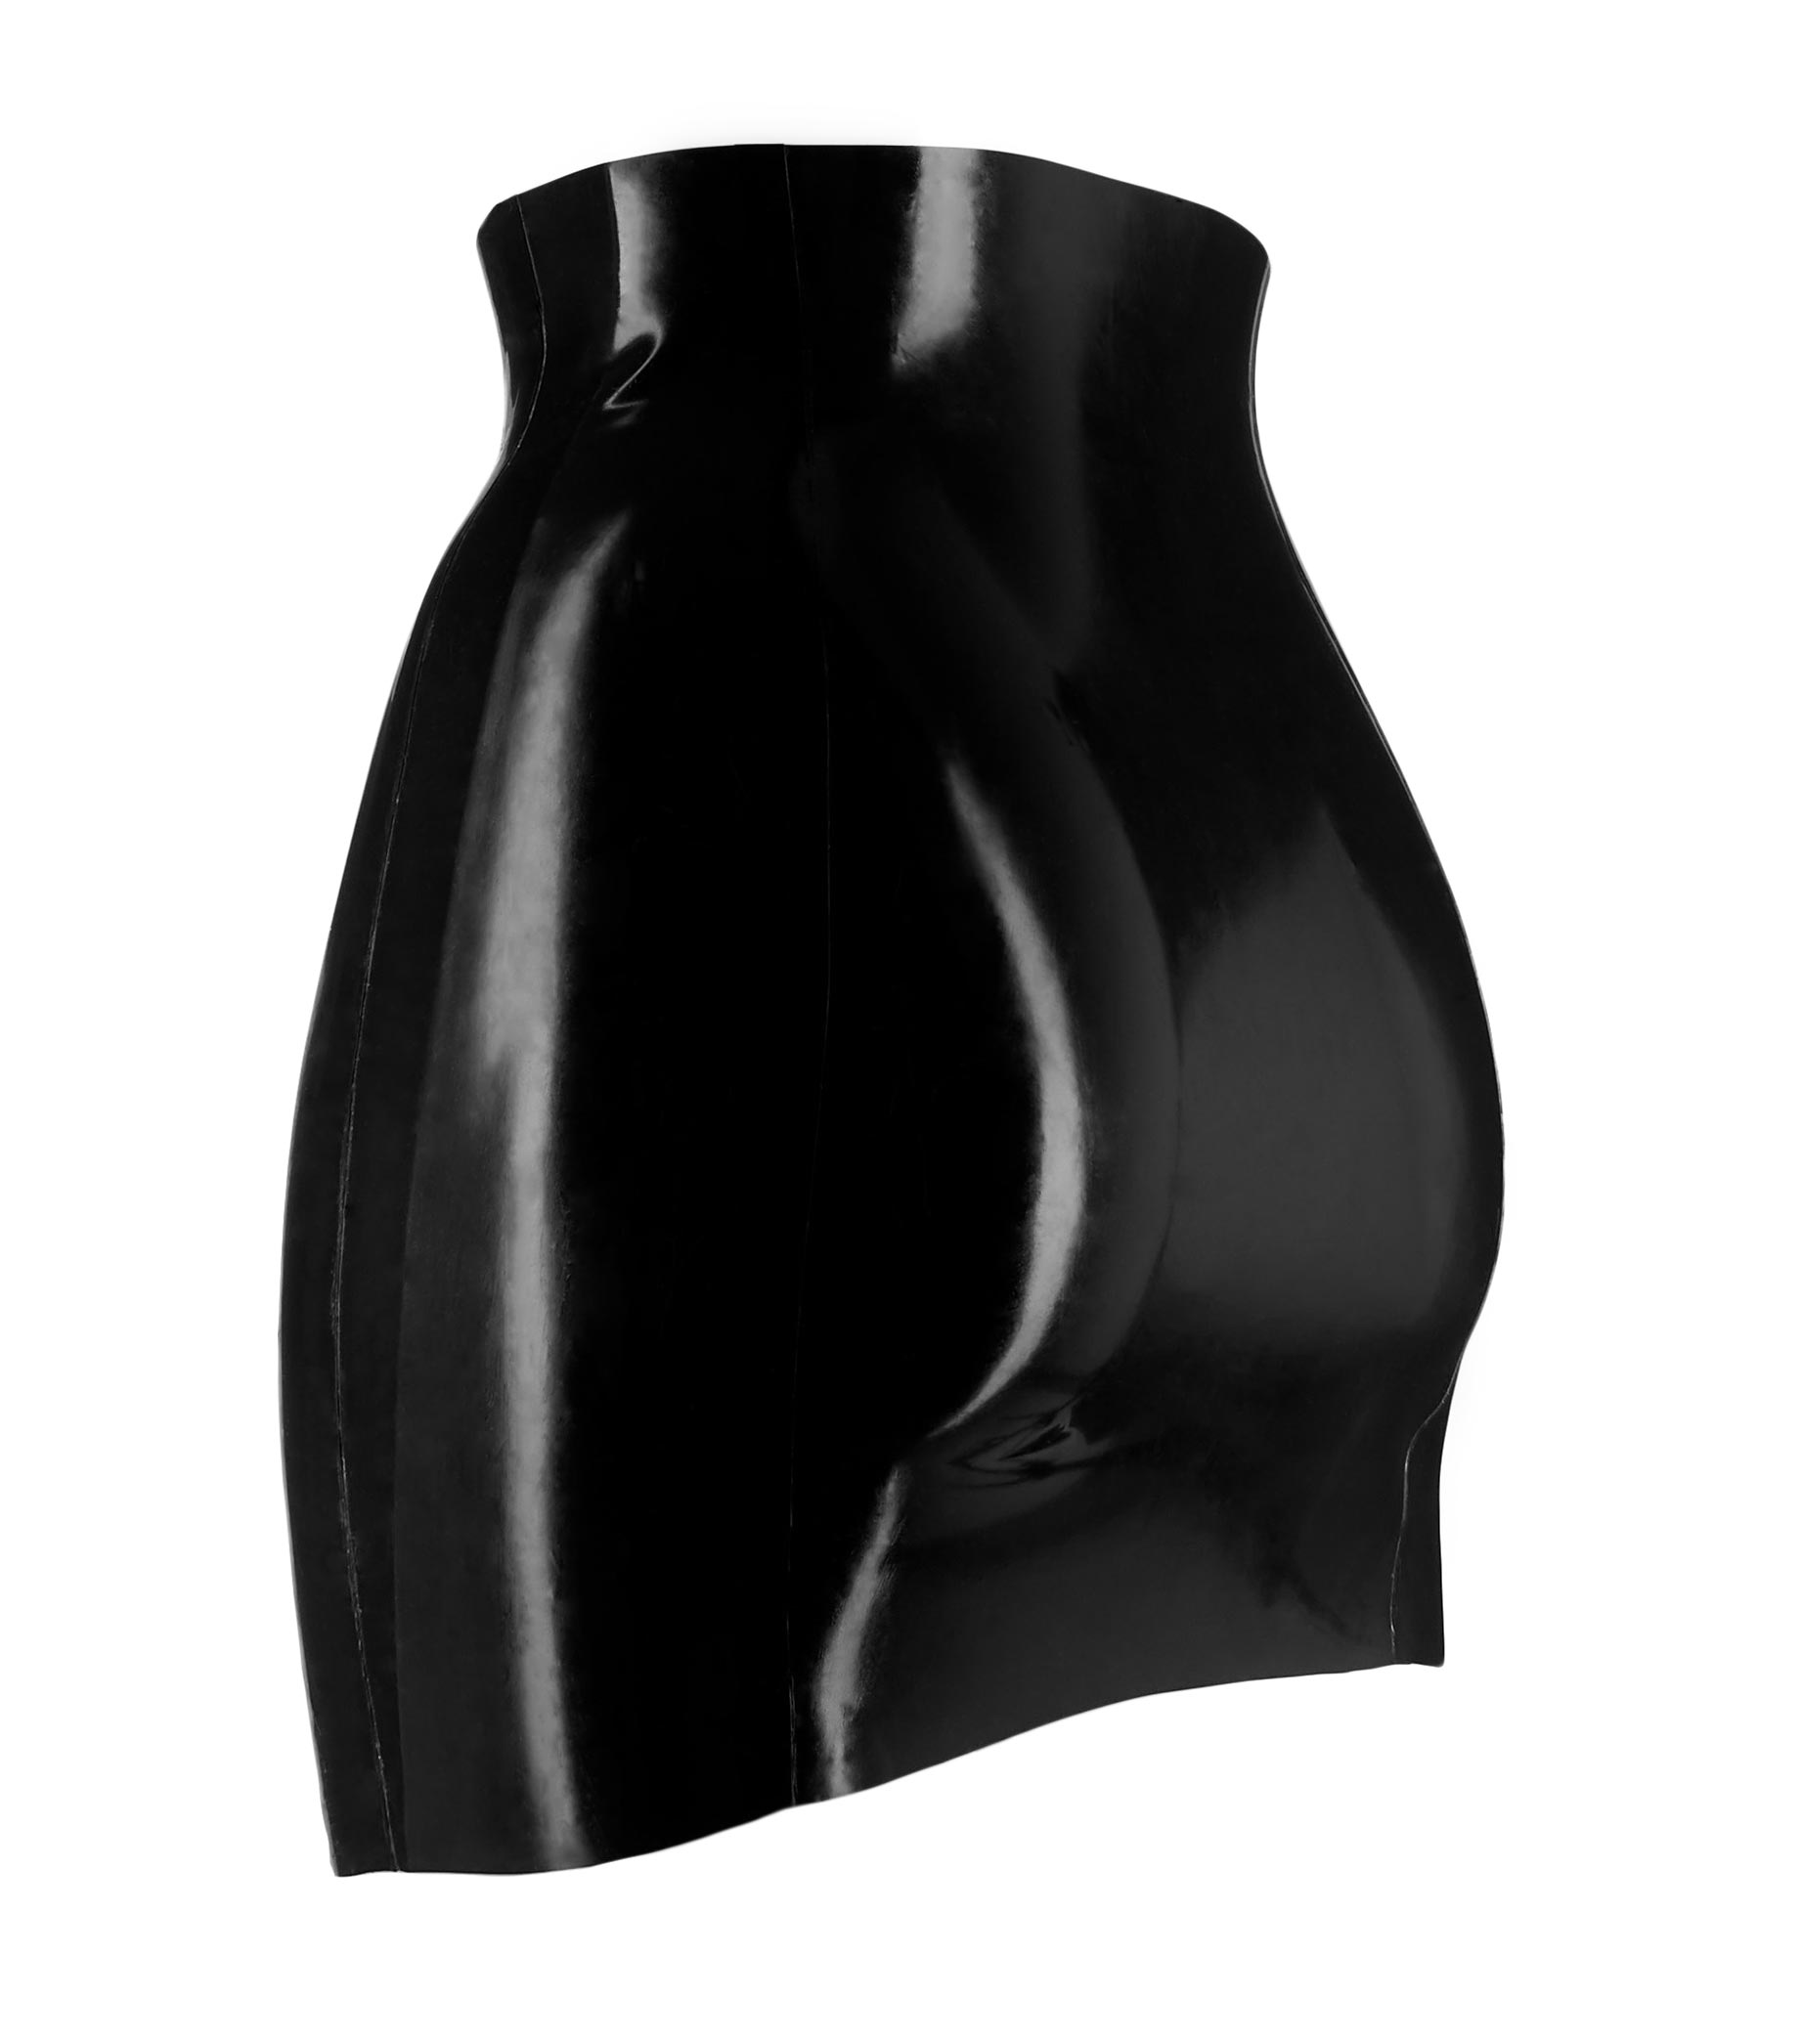 High-waisted, tight & shiny mini skirt in black latex rubber.